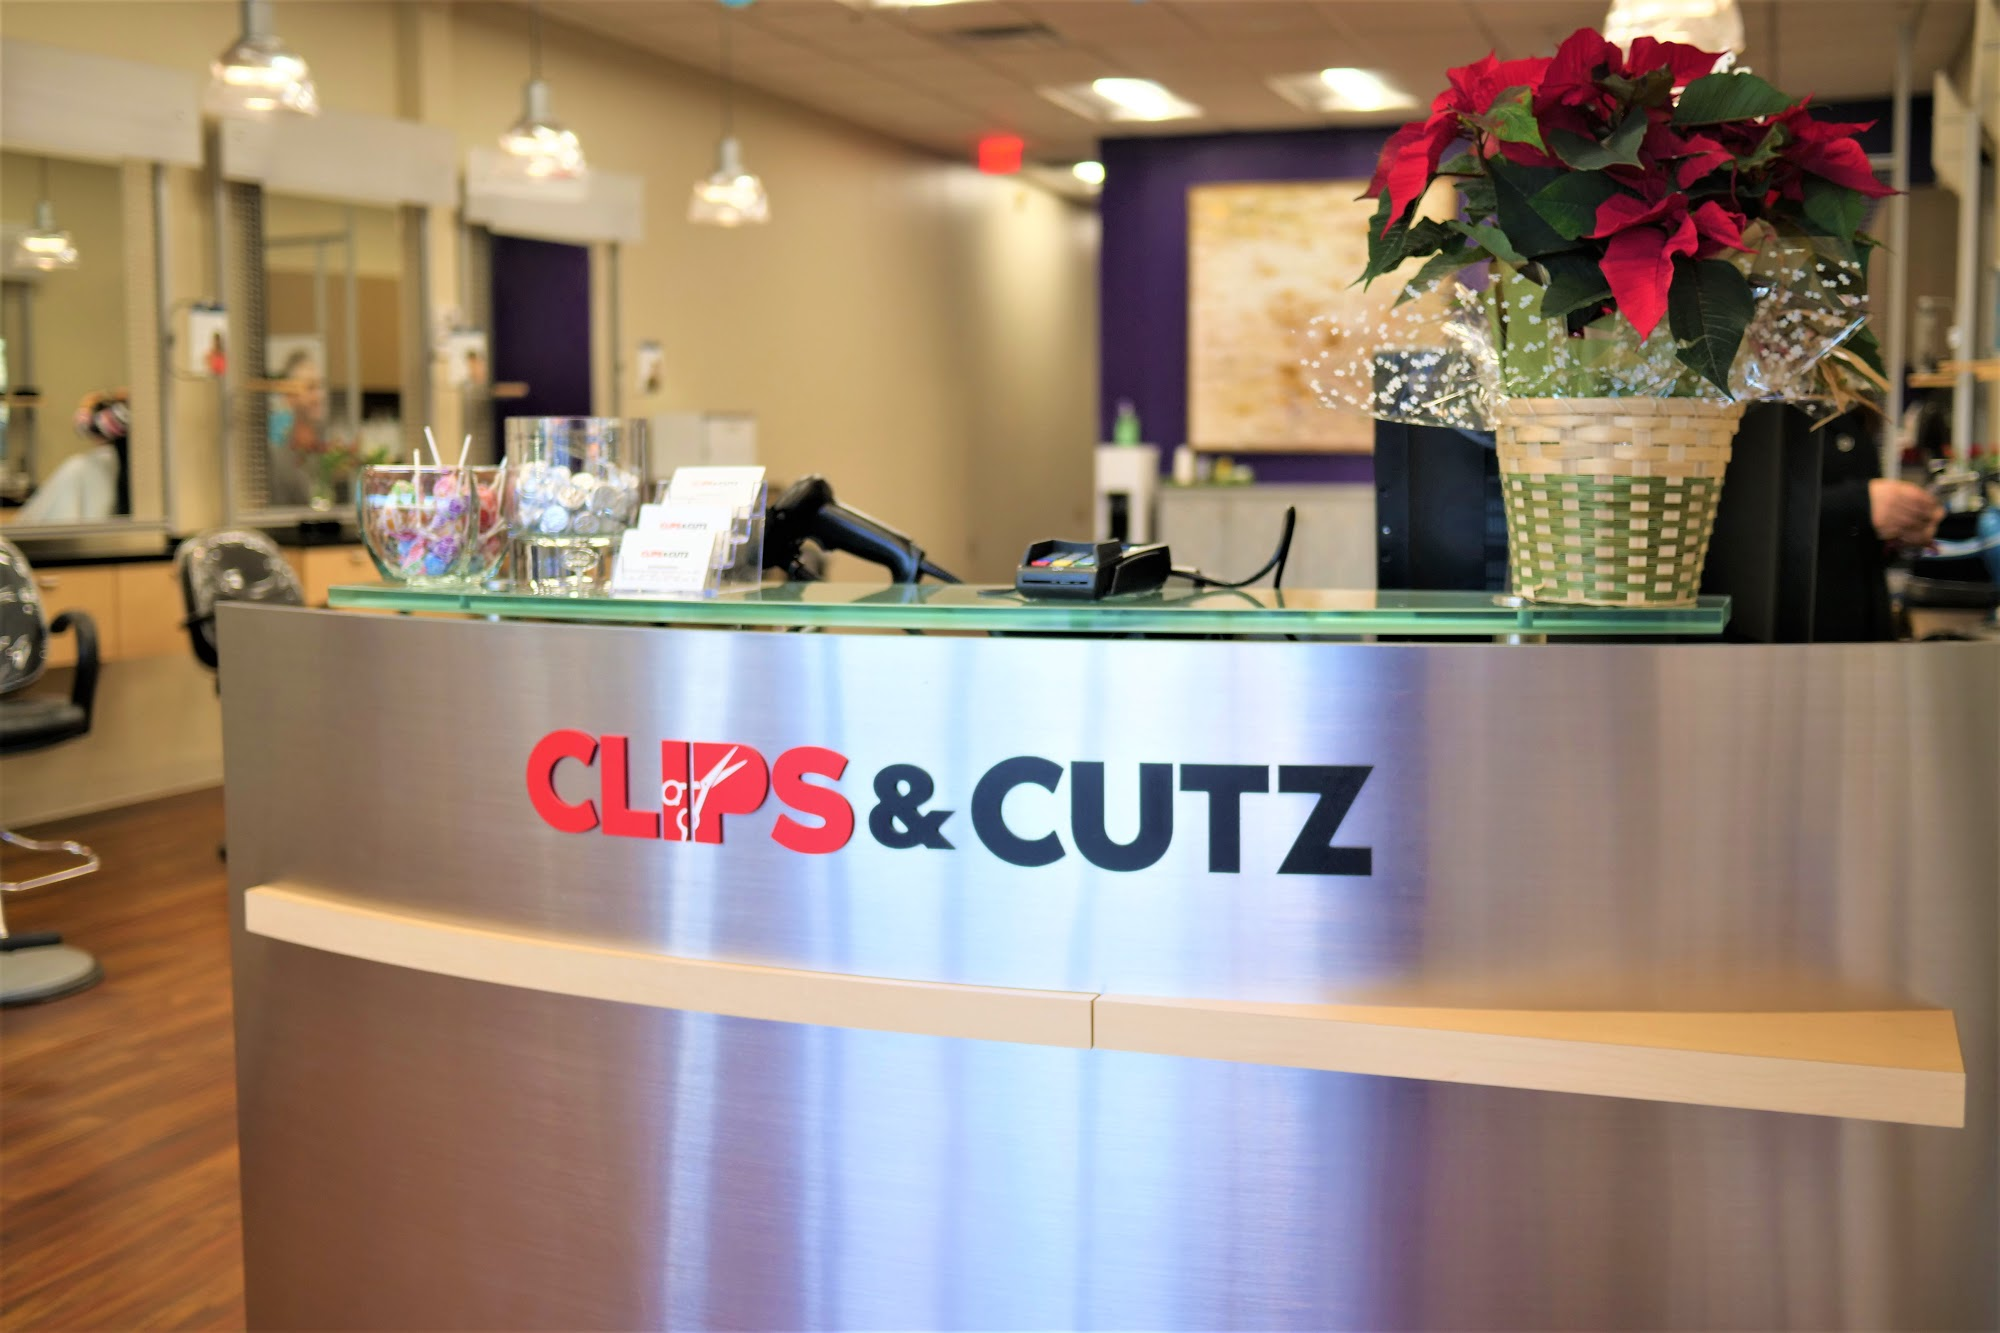 Clips & Cutz - Hair Salon 9210 Baltimore National Pike suite w-6, Ellicott City